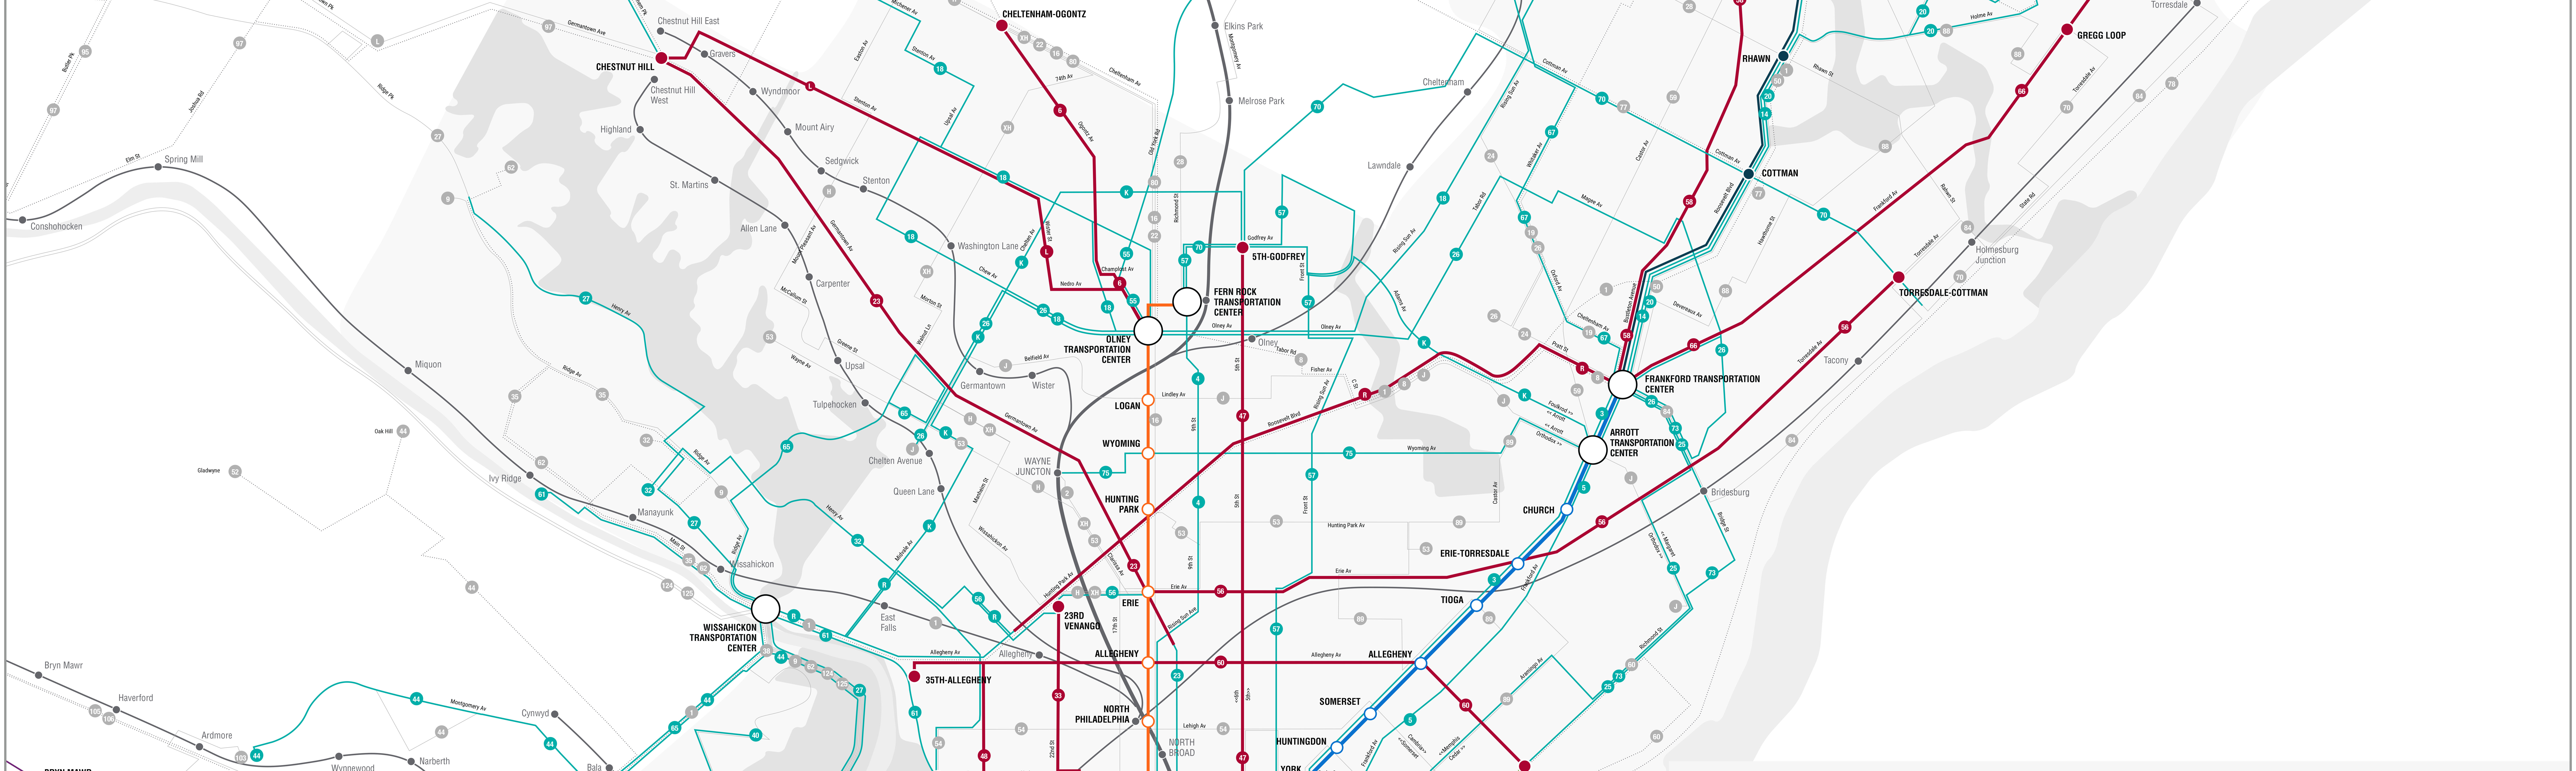 SEPTA | A New Way to Look at Transit on miami metrorail map, san francisco municipal railway map, massachusetts bay transportation authority map, bay area rapid transit map, baltimore and ohio railroad map, pan am railways map, san francisco muni map, go transit map, nj transit map, north jersey coast line map, broad street subway map, rta rapid transit map, canadian national map, milwaukee county transit system map, second avenue subway map, dallas area rapid transit map, lirr map, long island railroad map, amtrak map, missouri pacific map,